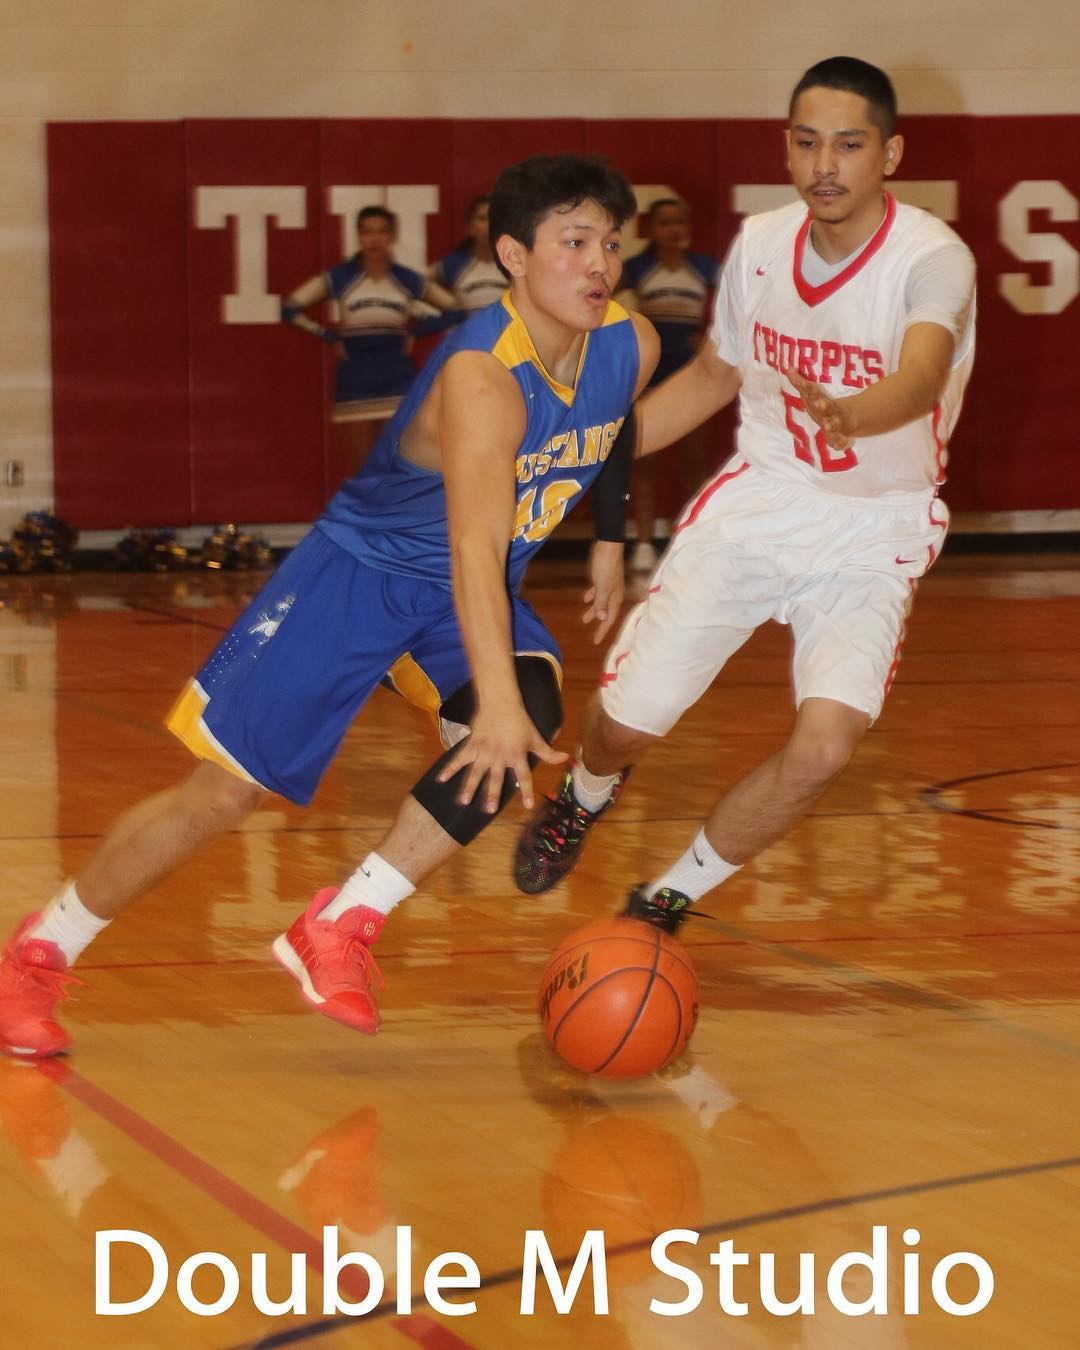 - Soon t be senior, Little Wound G, Mankato LeBeaux will be one of the top returners in Region 7A this coming season. A tough, and gritty player, LeBeaux, in his 2nd season with Sacred Hoops Basketball will fit right in with coach Buus's relentless defensive approach.